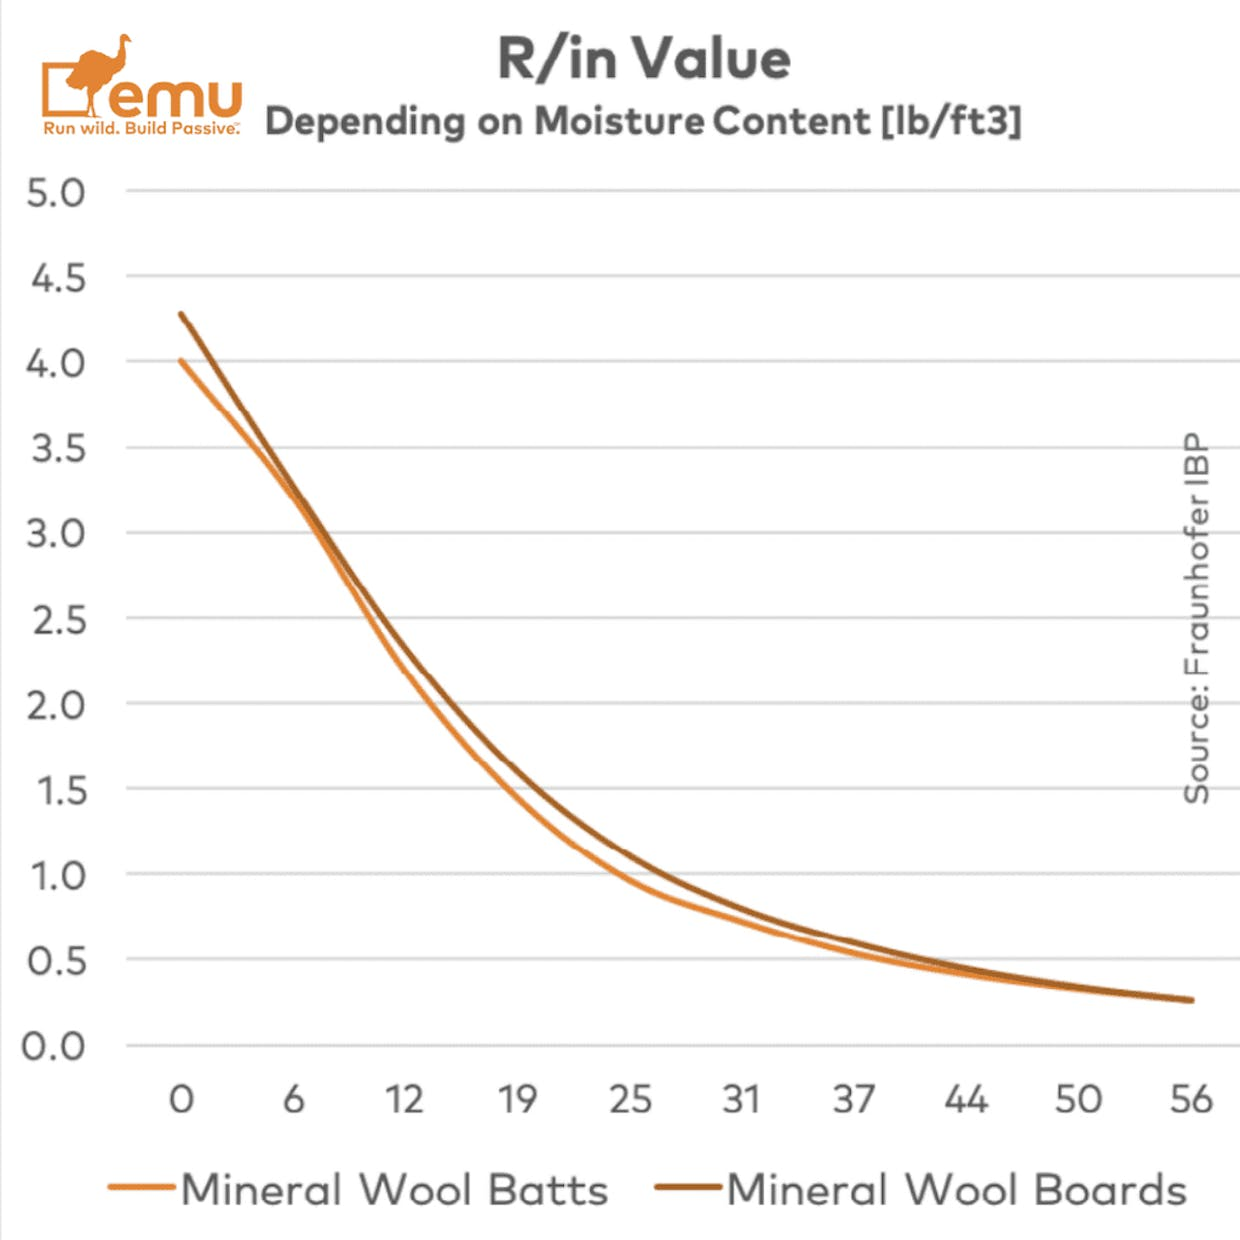 I'm curious about people's thoughts around mineral wool as exterior insulation - specifically having reduced insulation value when wet. I have heard some differing opinions from manufacturers.